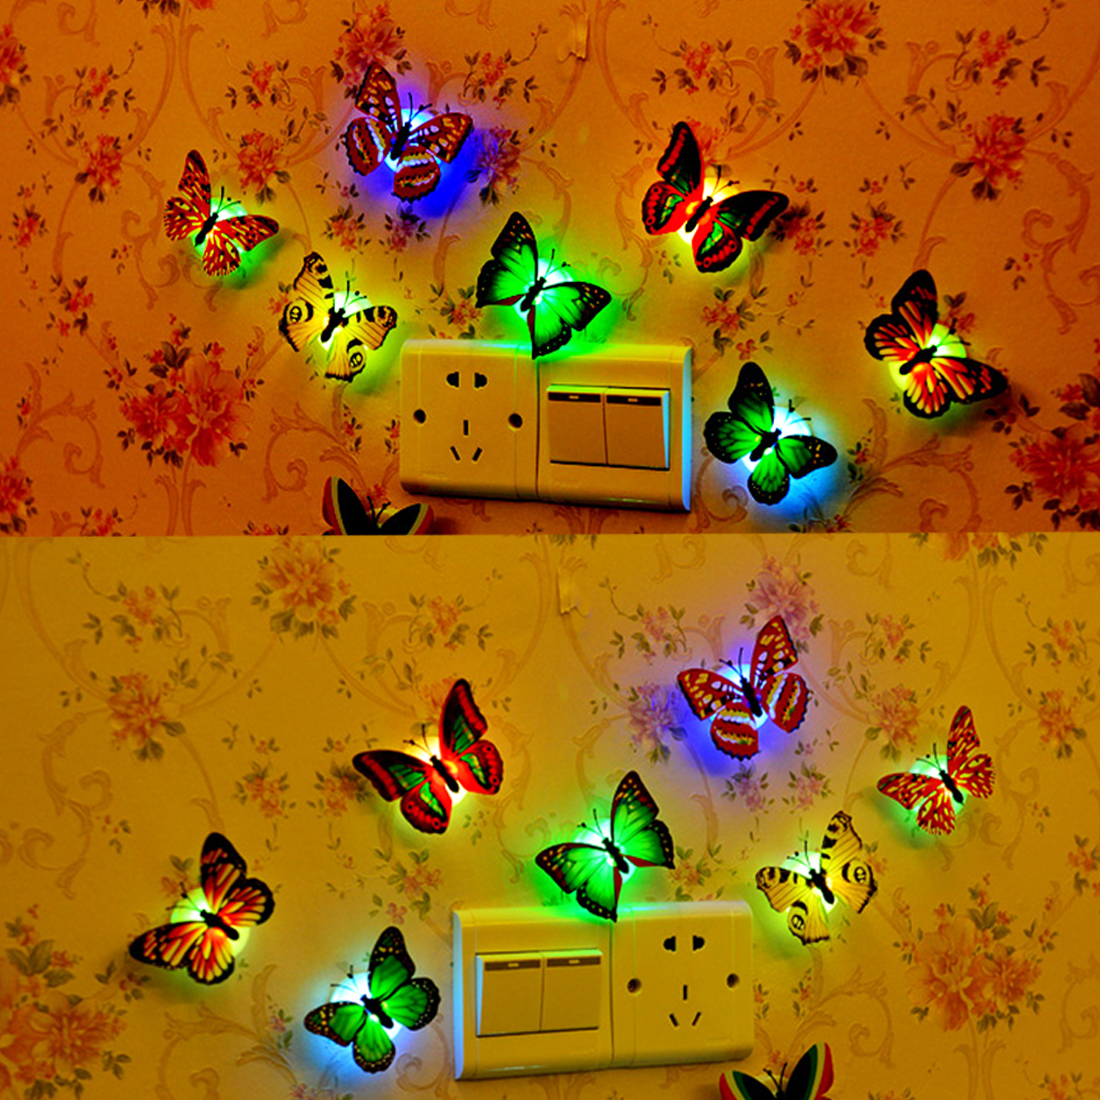 Multi Color Light LED Butterfly Atmosphere Lamp Wall Stickers easy installation night light Party Home Fridge bedroom decor 12pcs 3d butterfly wall sticker fridge magnet home decor art applique